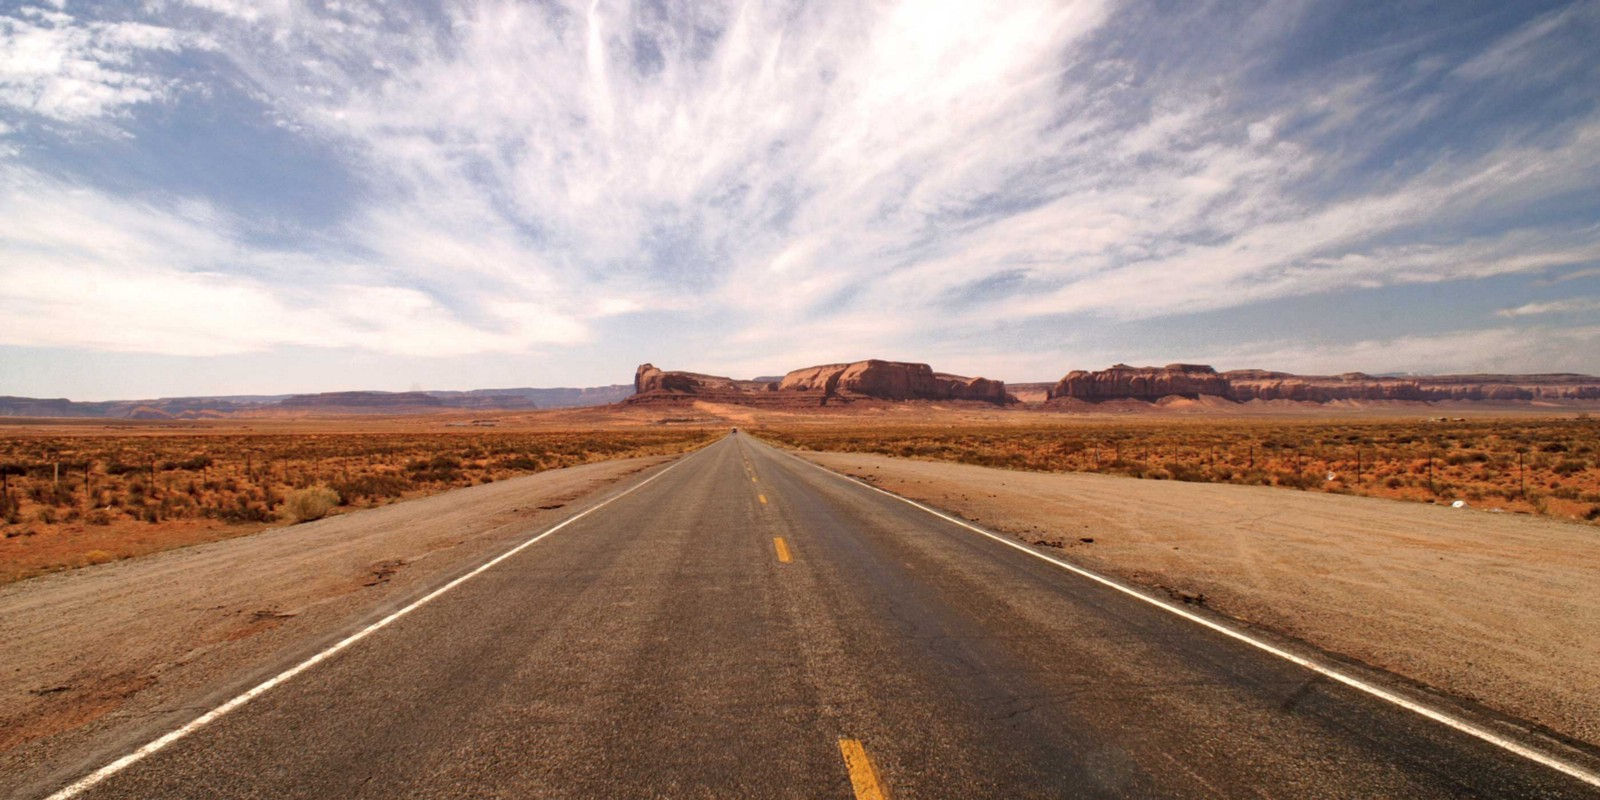 this is the perfect us road trip according to scientists